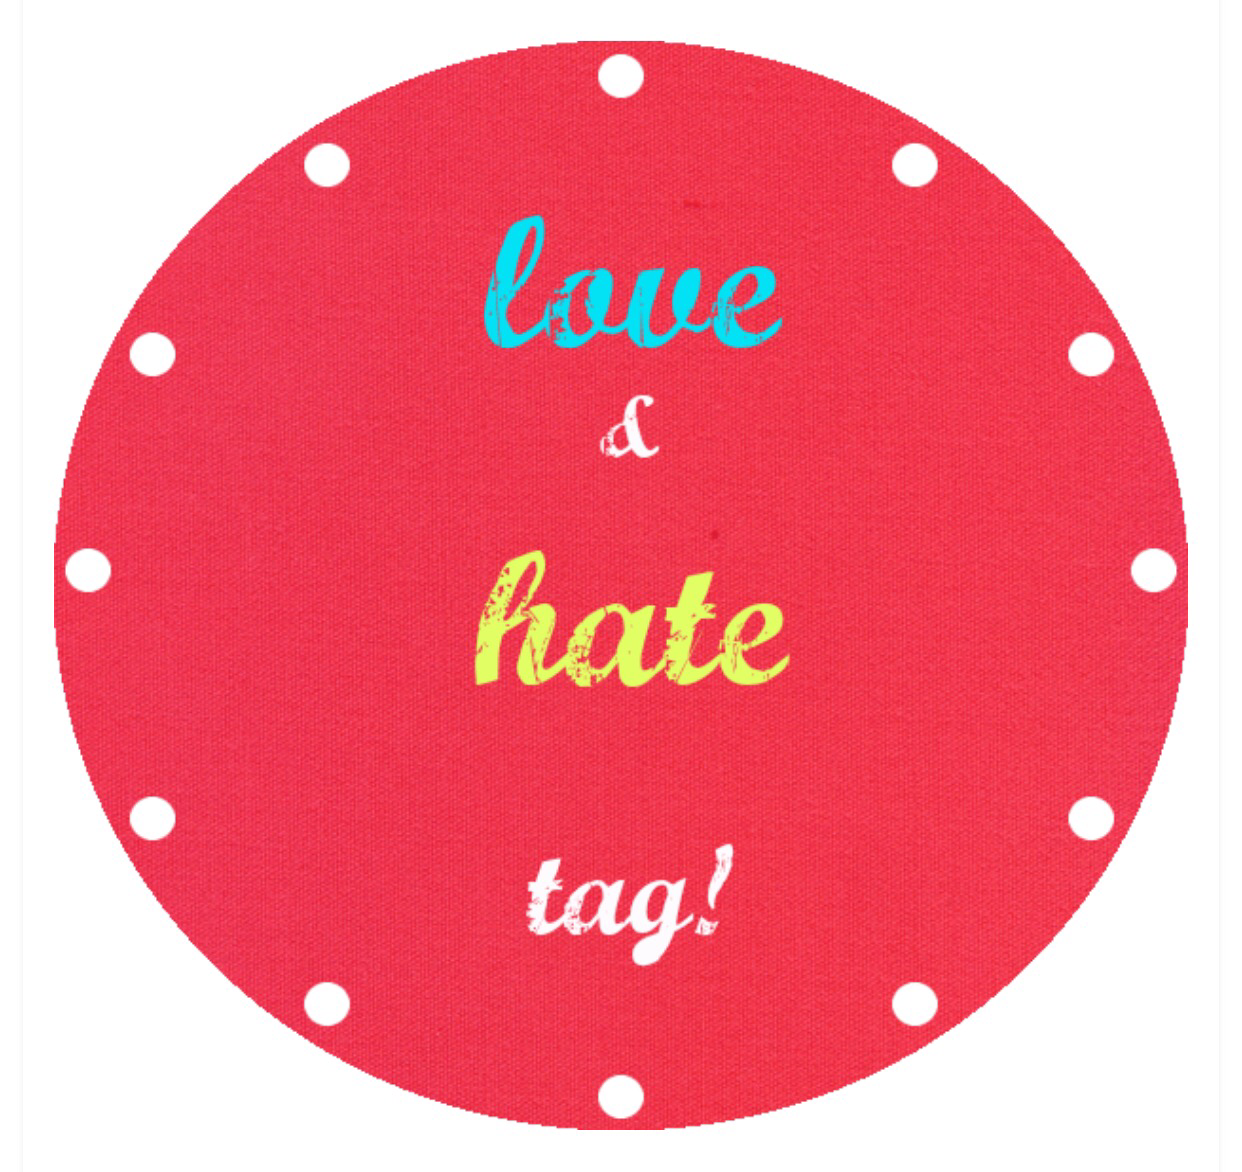 About Me : Love Hate Tag!